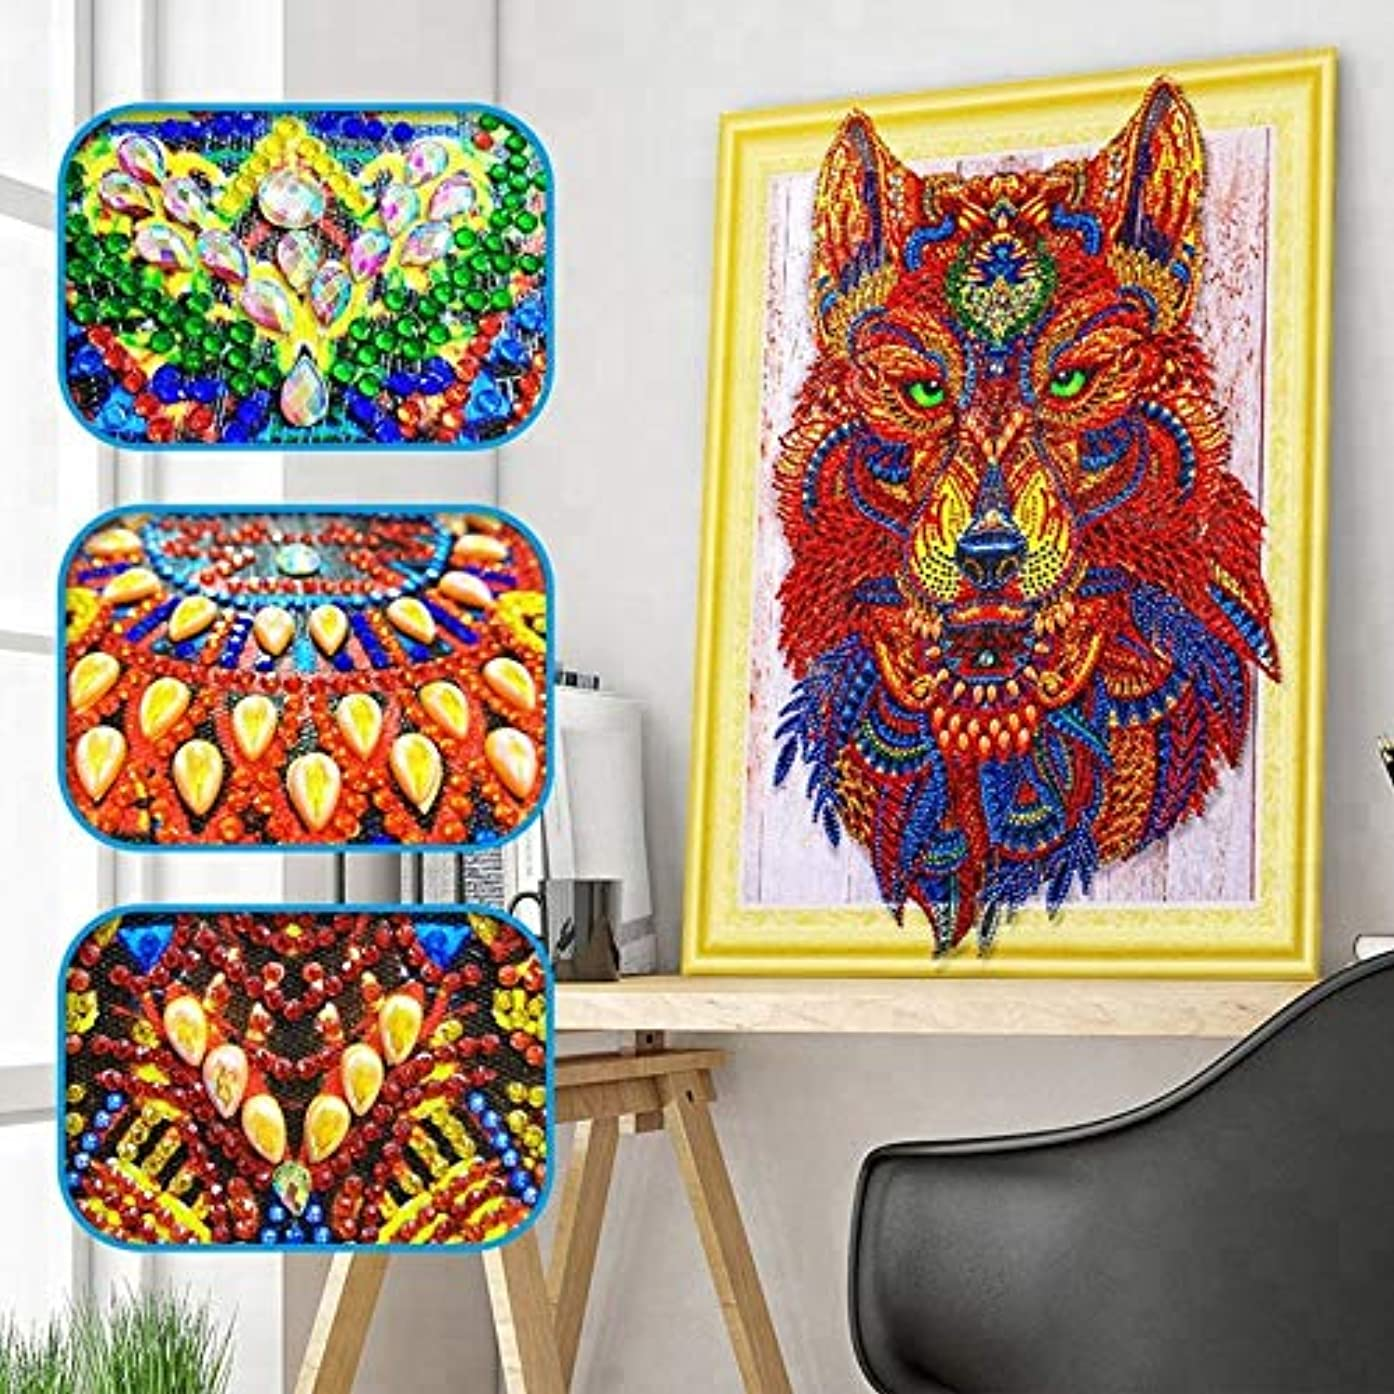 5D DIY Special Shaped Diamond Painting Kit, 15.7X 11.8 Inch Crystal Rhinestone Diamond Embroidery Paintings Pictures Arts Craft for Home Wall Decor (Green Wolf)